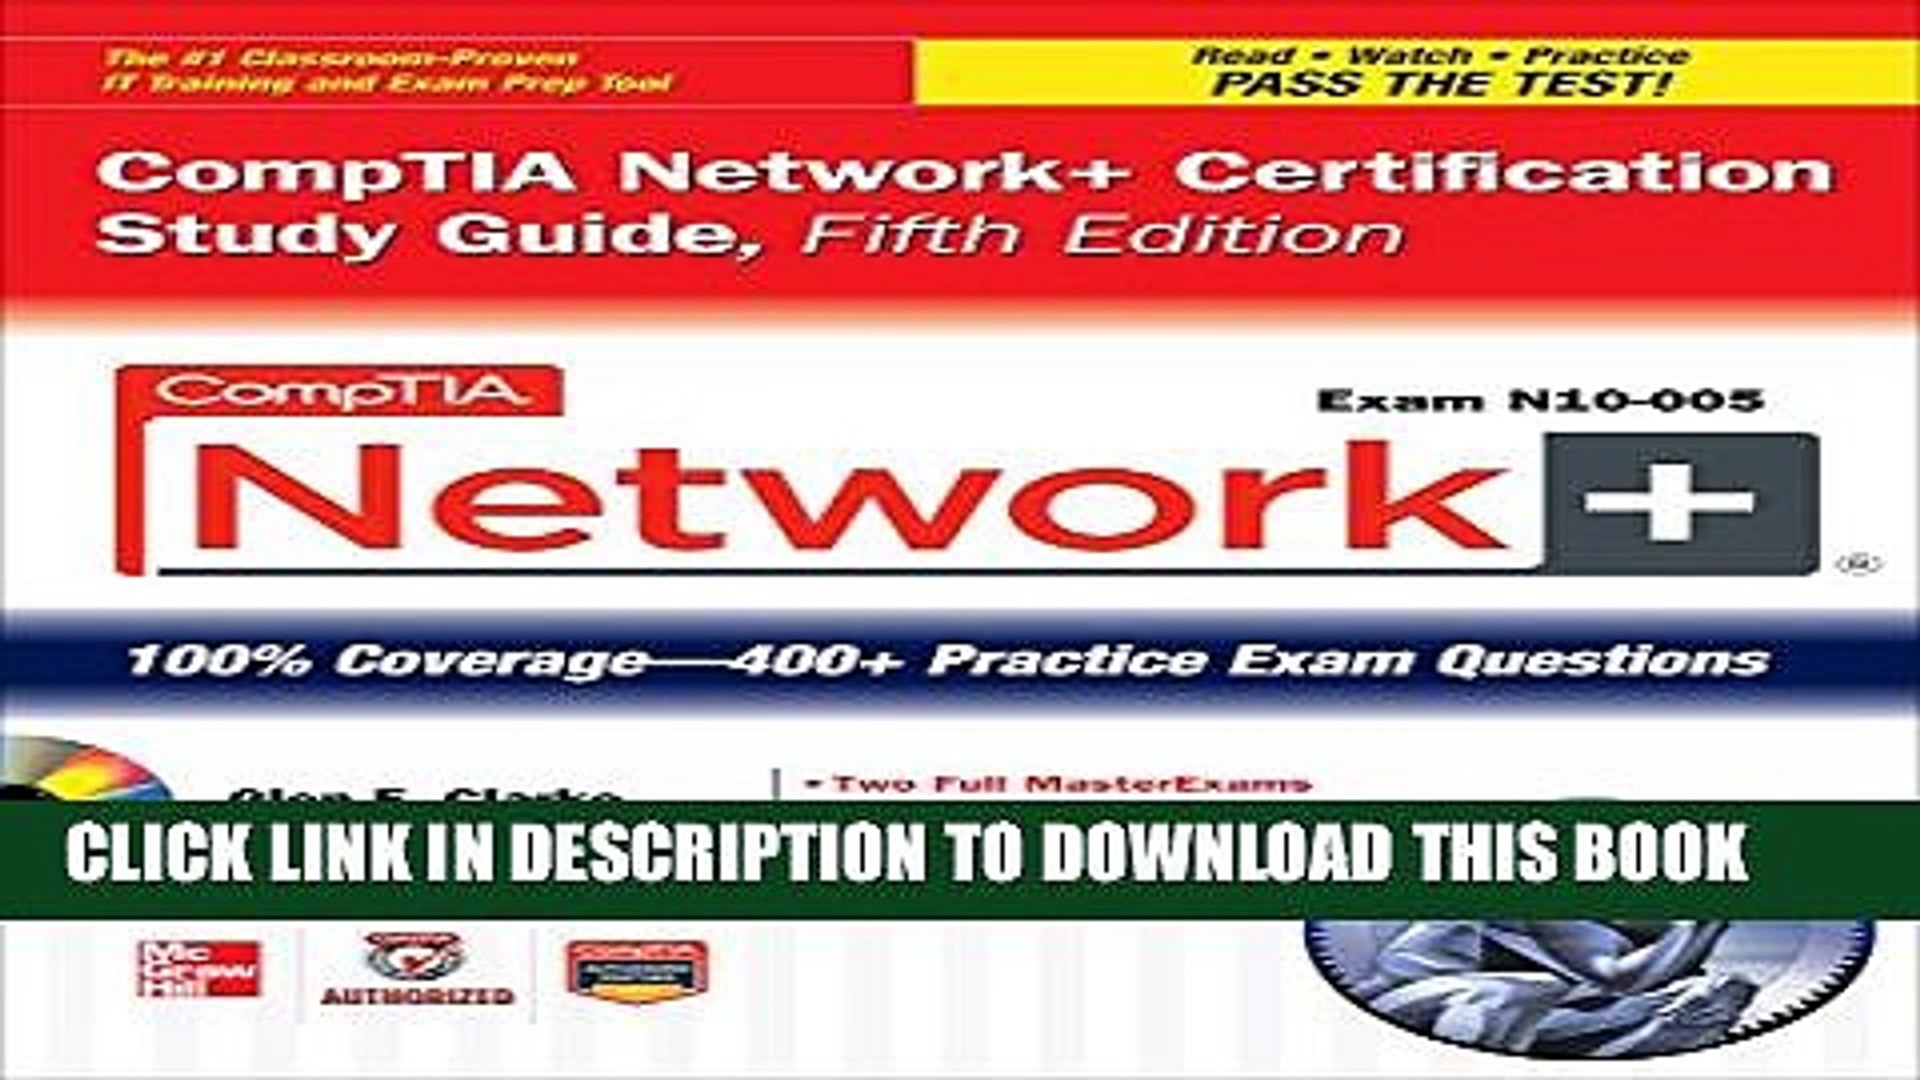 CompTIA Network Exam N10-005 5th Edition Certification All-in-One Exam Guide